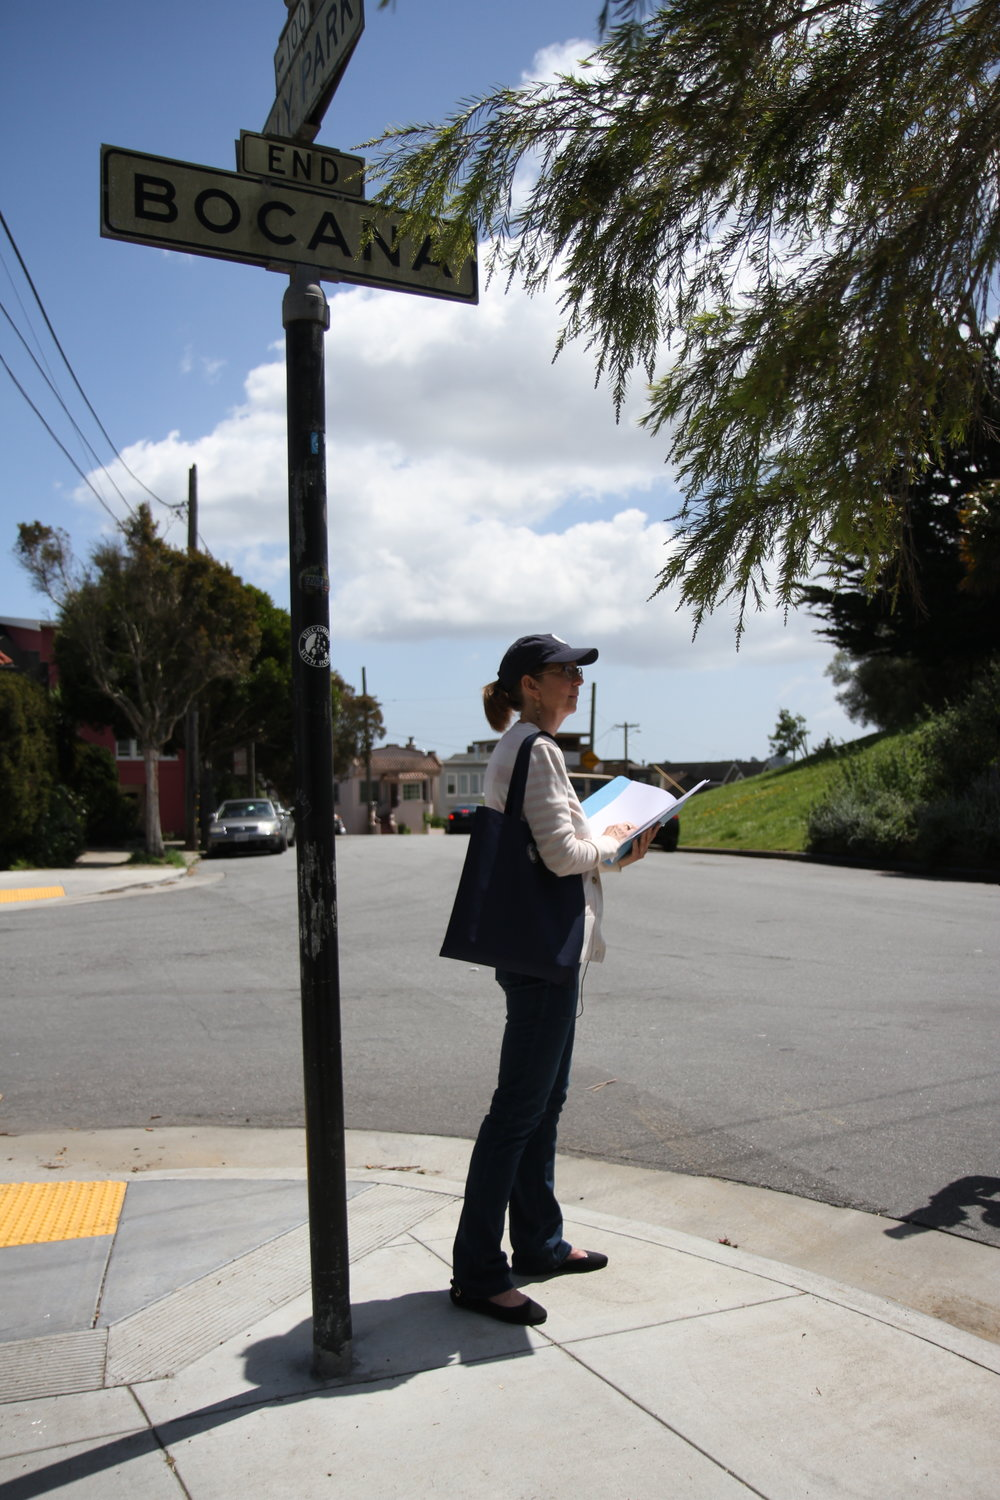 Understanding the problems facing your own local streets is easy! There is so much to be learned just from getting out there, watching for problems, and talking to other people who share the street.